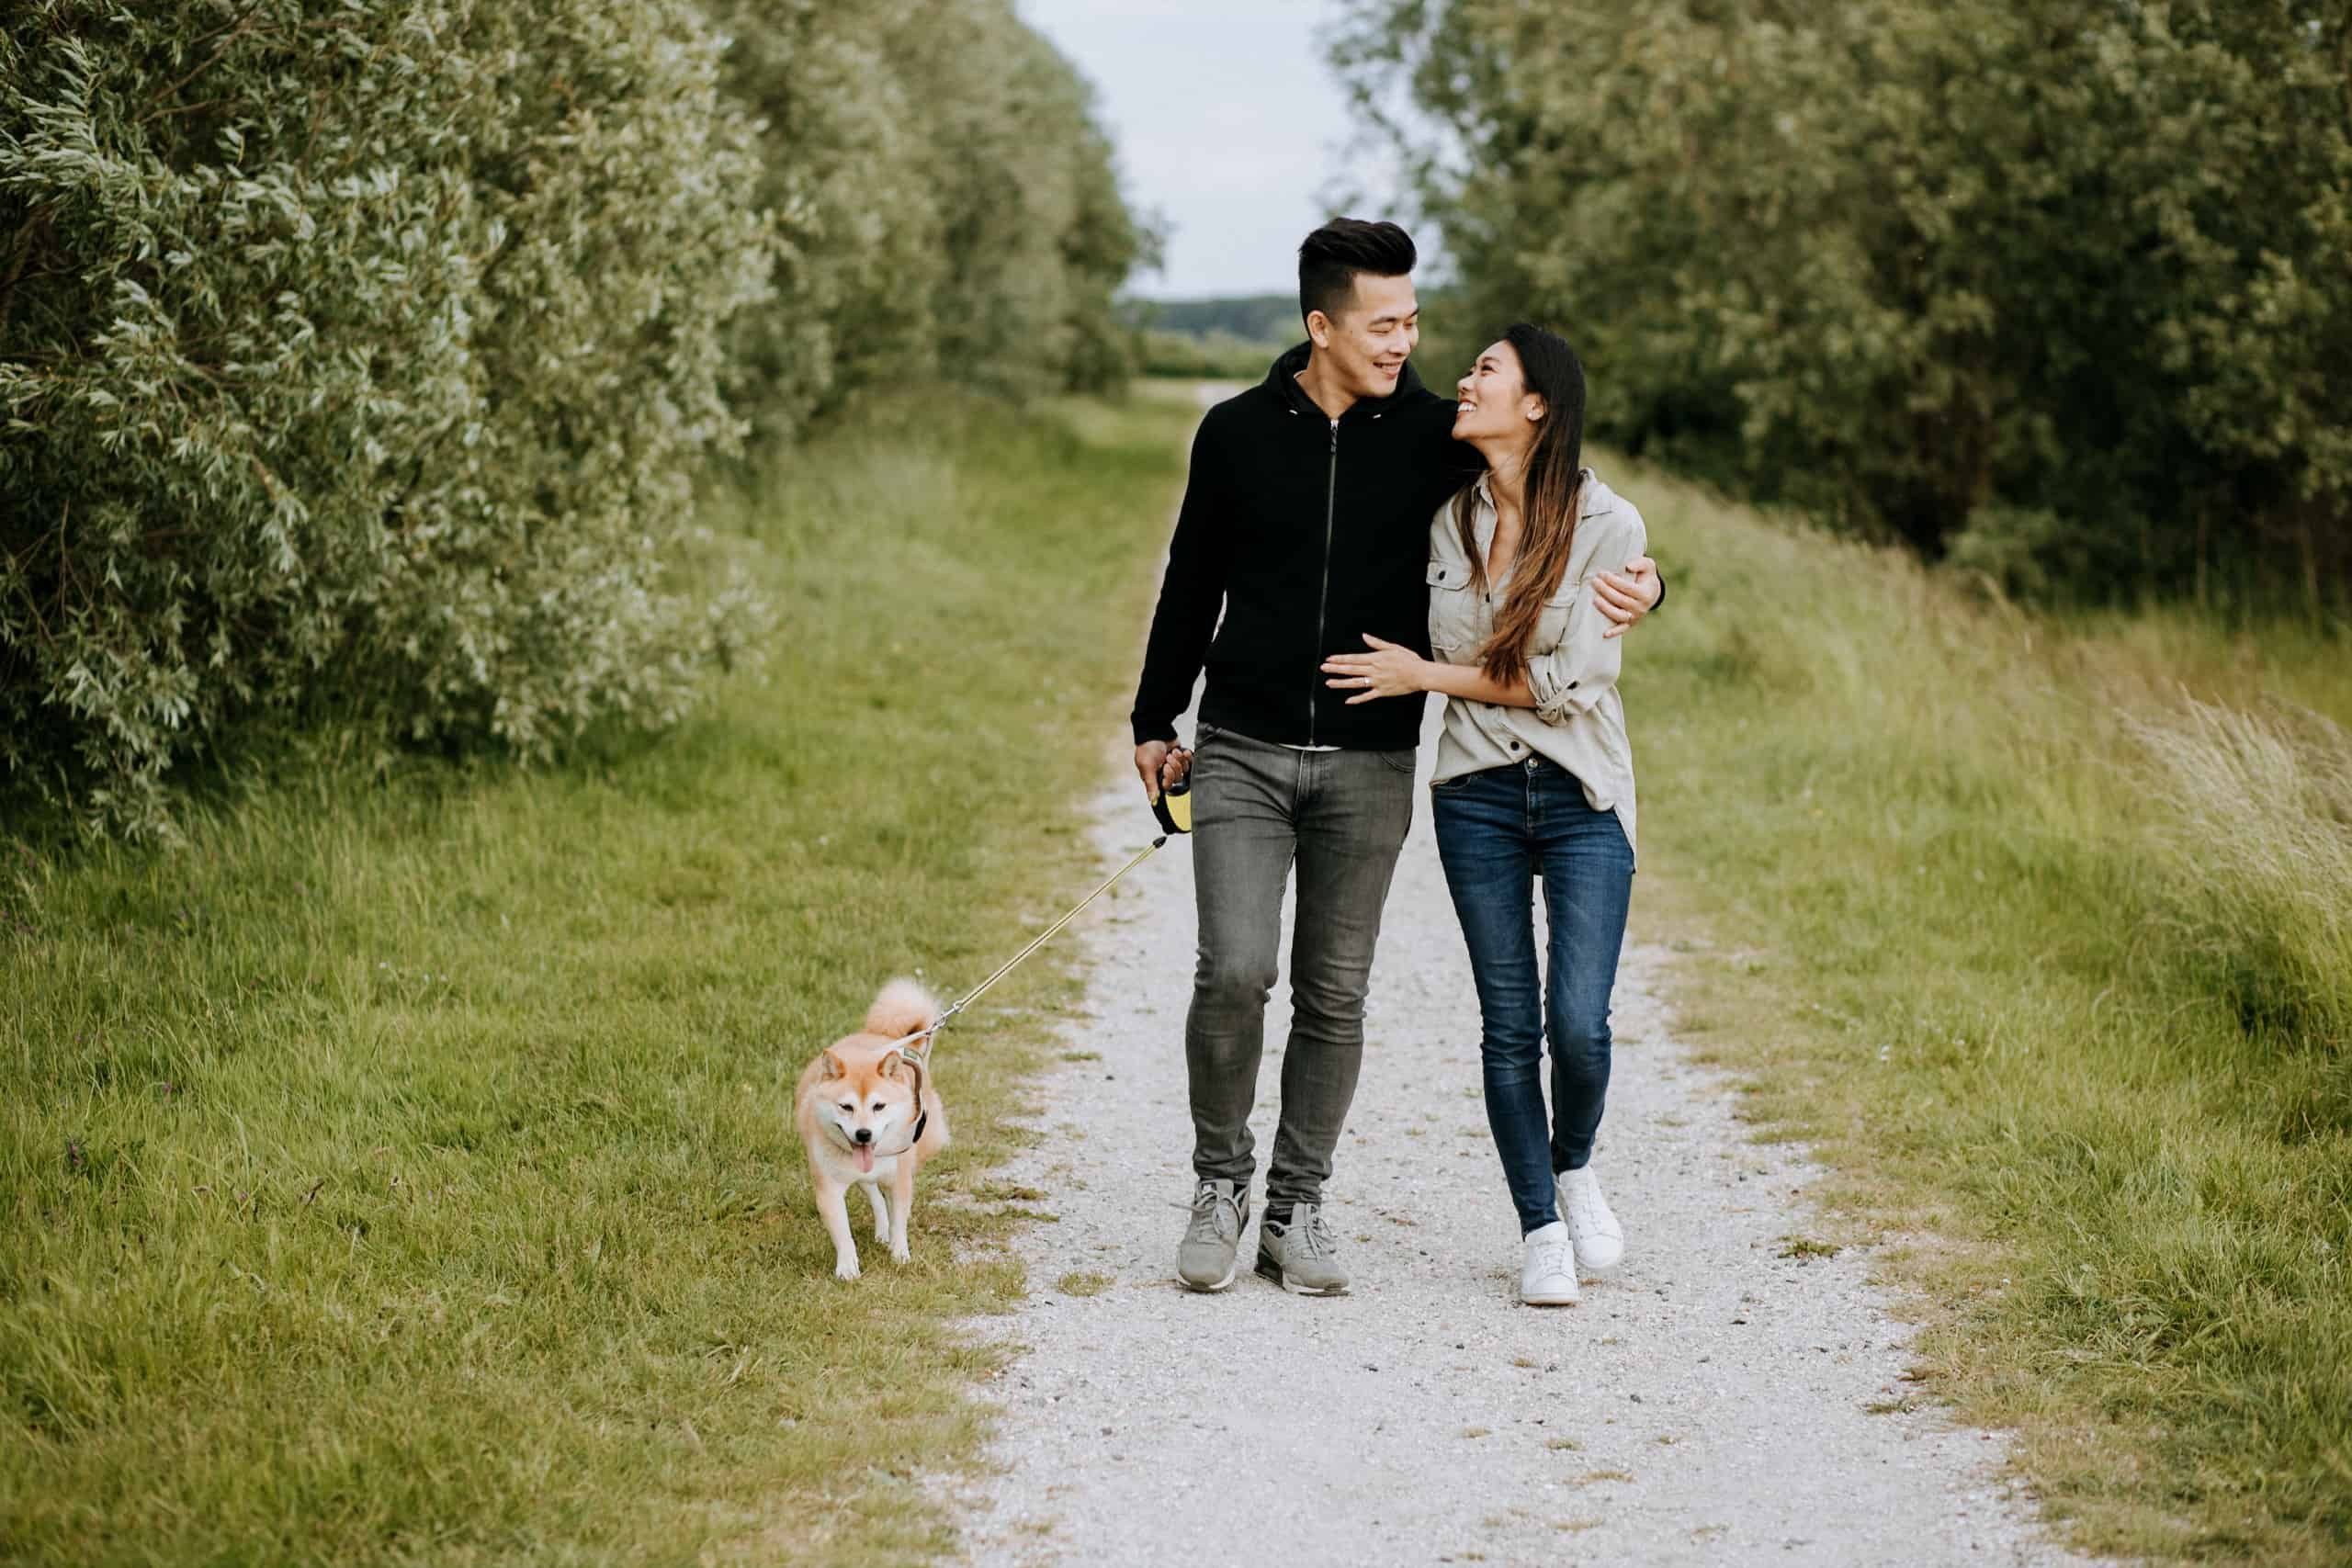 South Holland Rotterdam Netherlands Couple Portrait Walking Dog